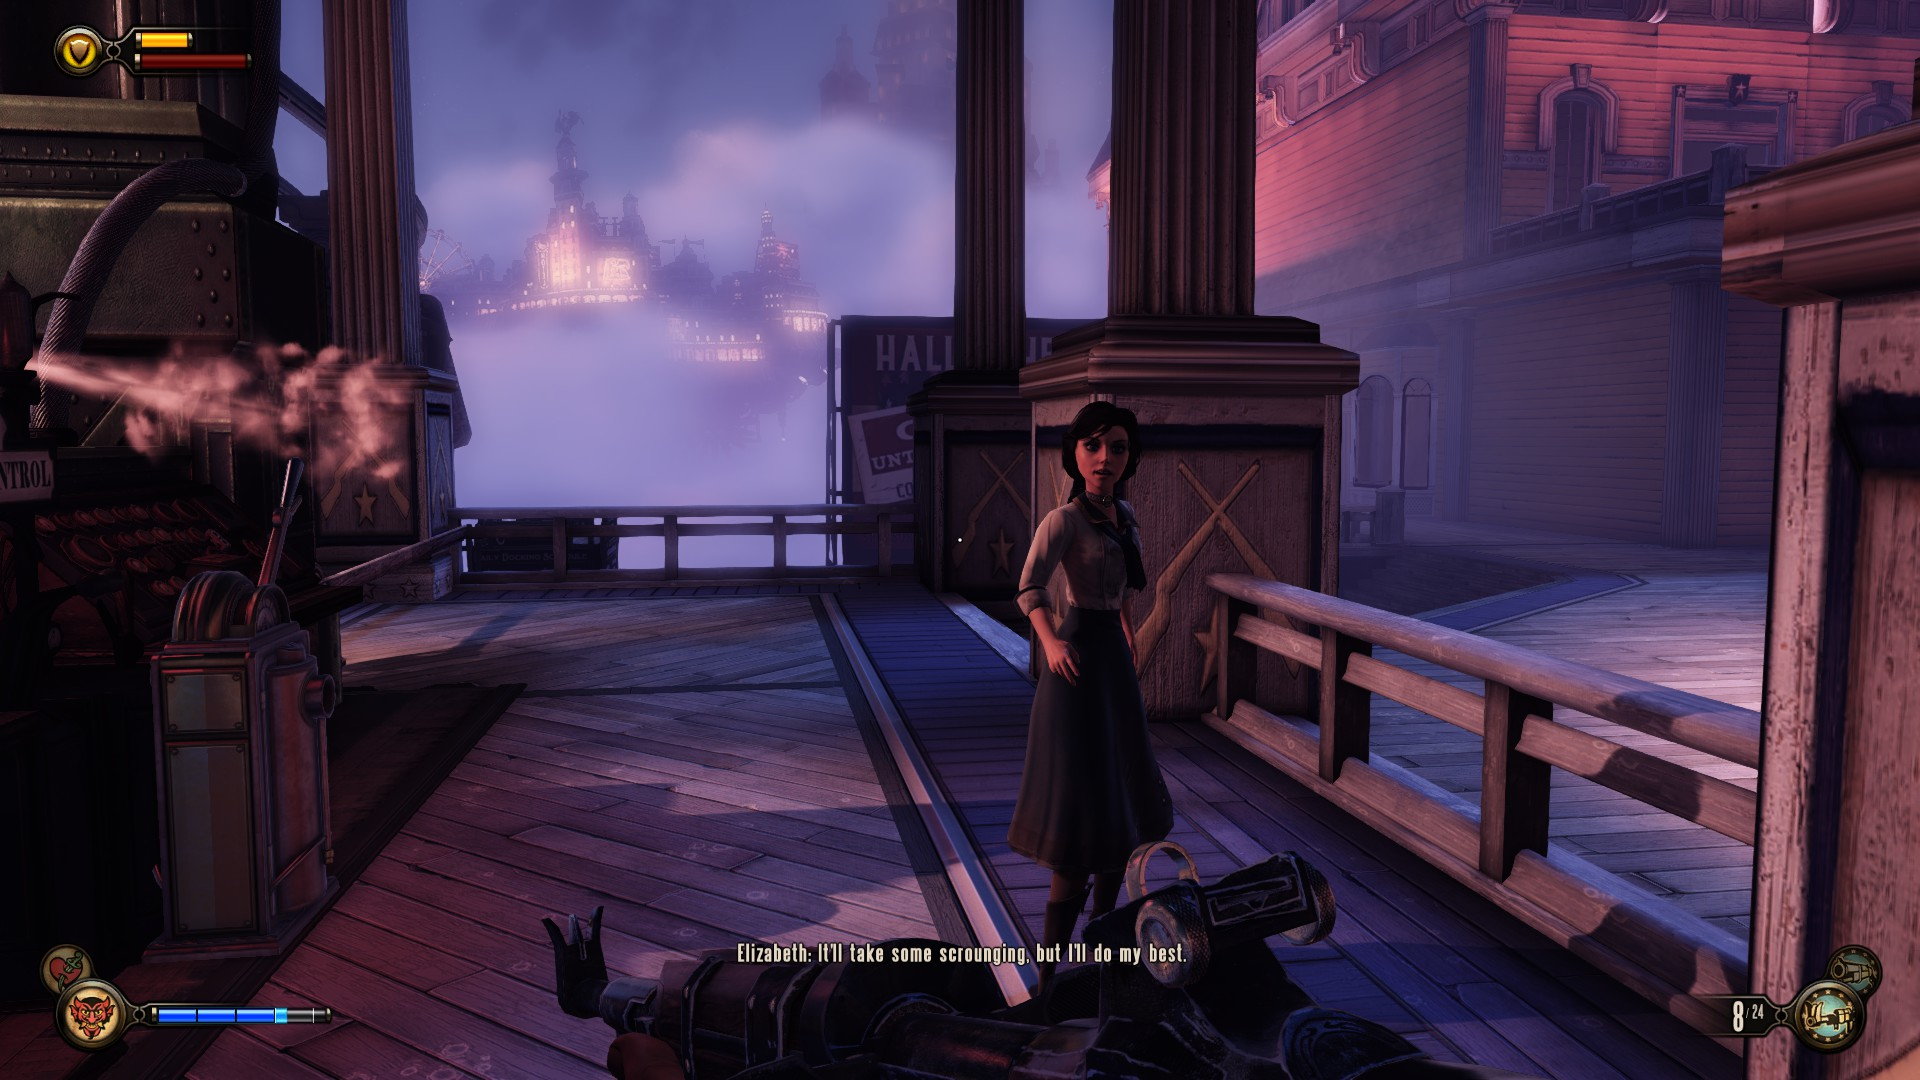 Elizabeth may well be the least annoying companion character in any video game